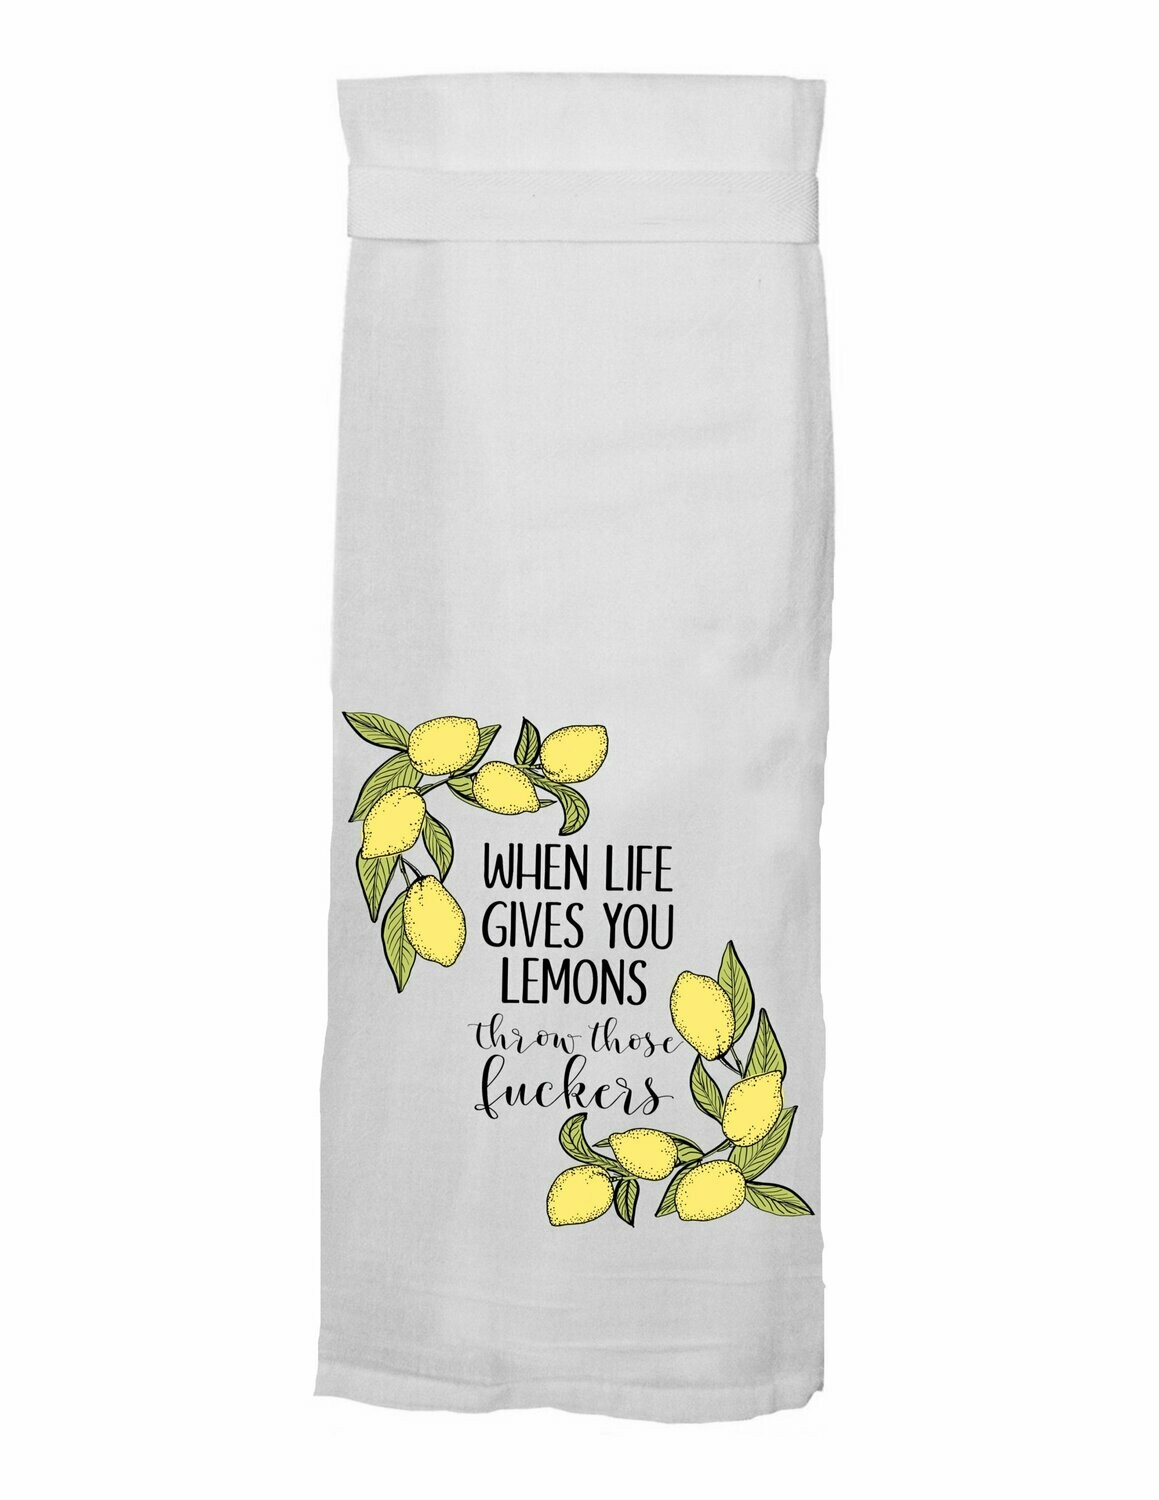 Throw Lemon Tea Towel By Twisted Wares